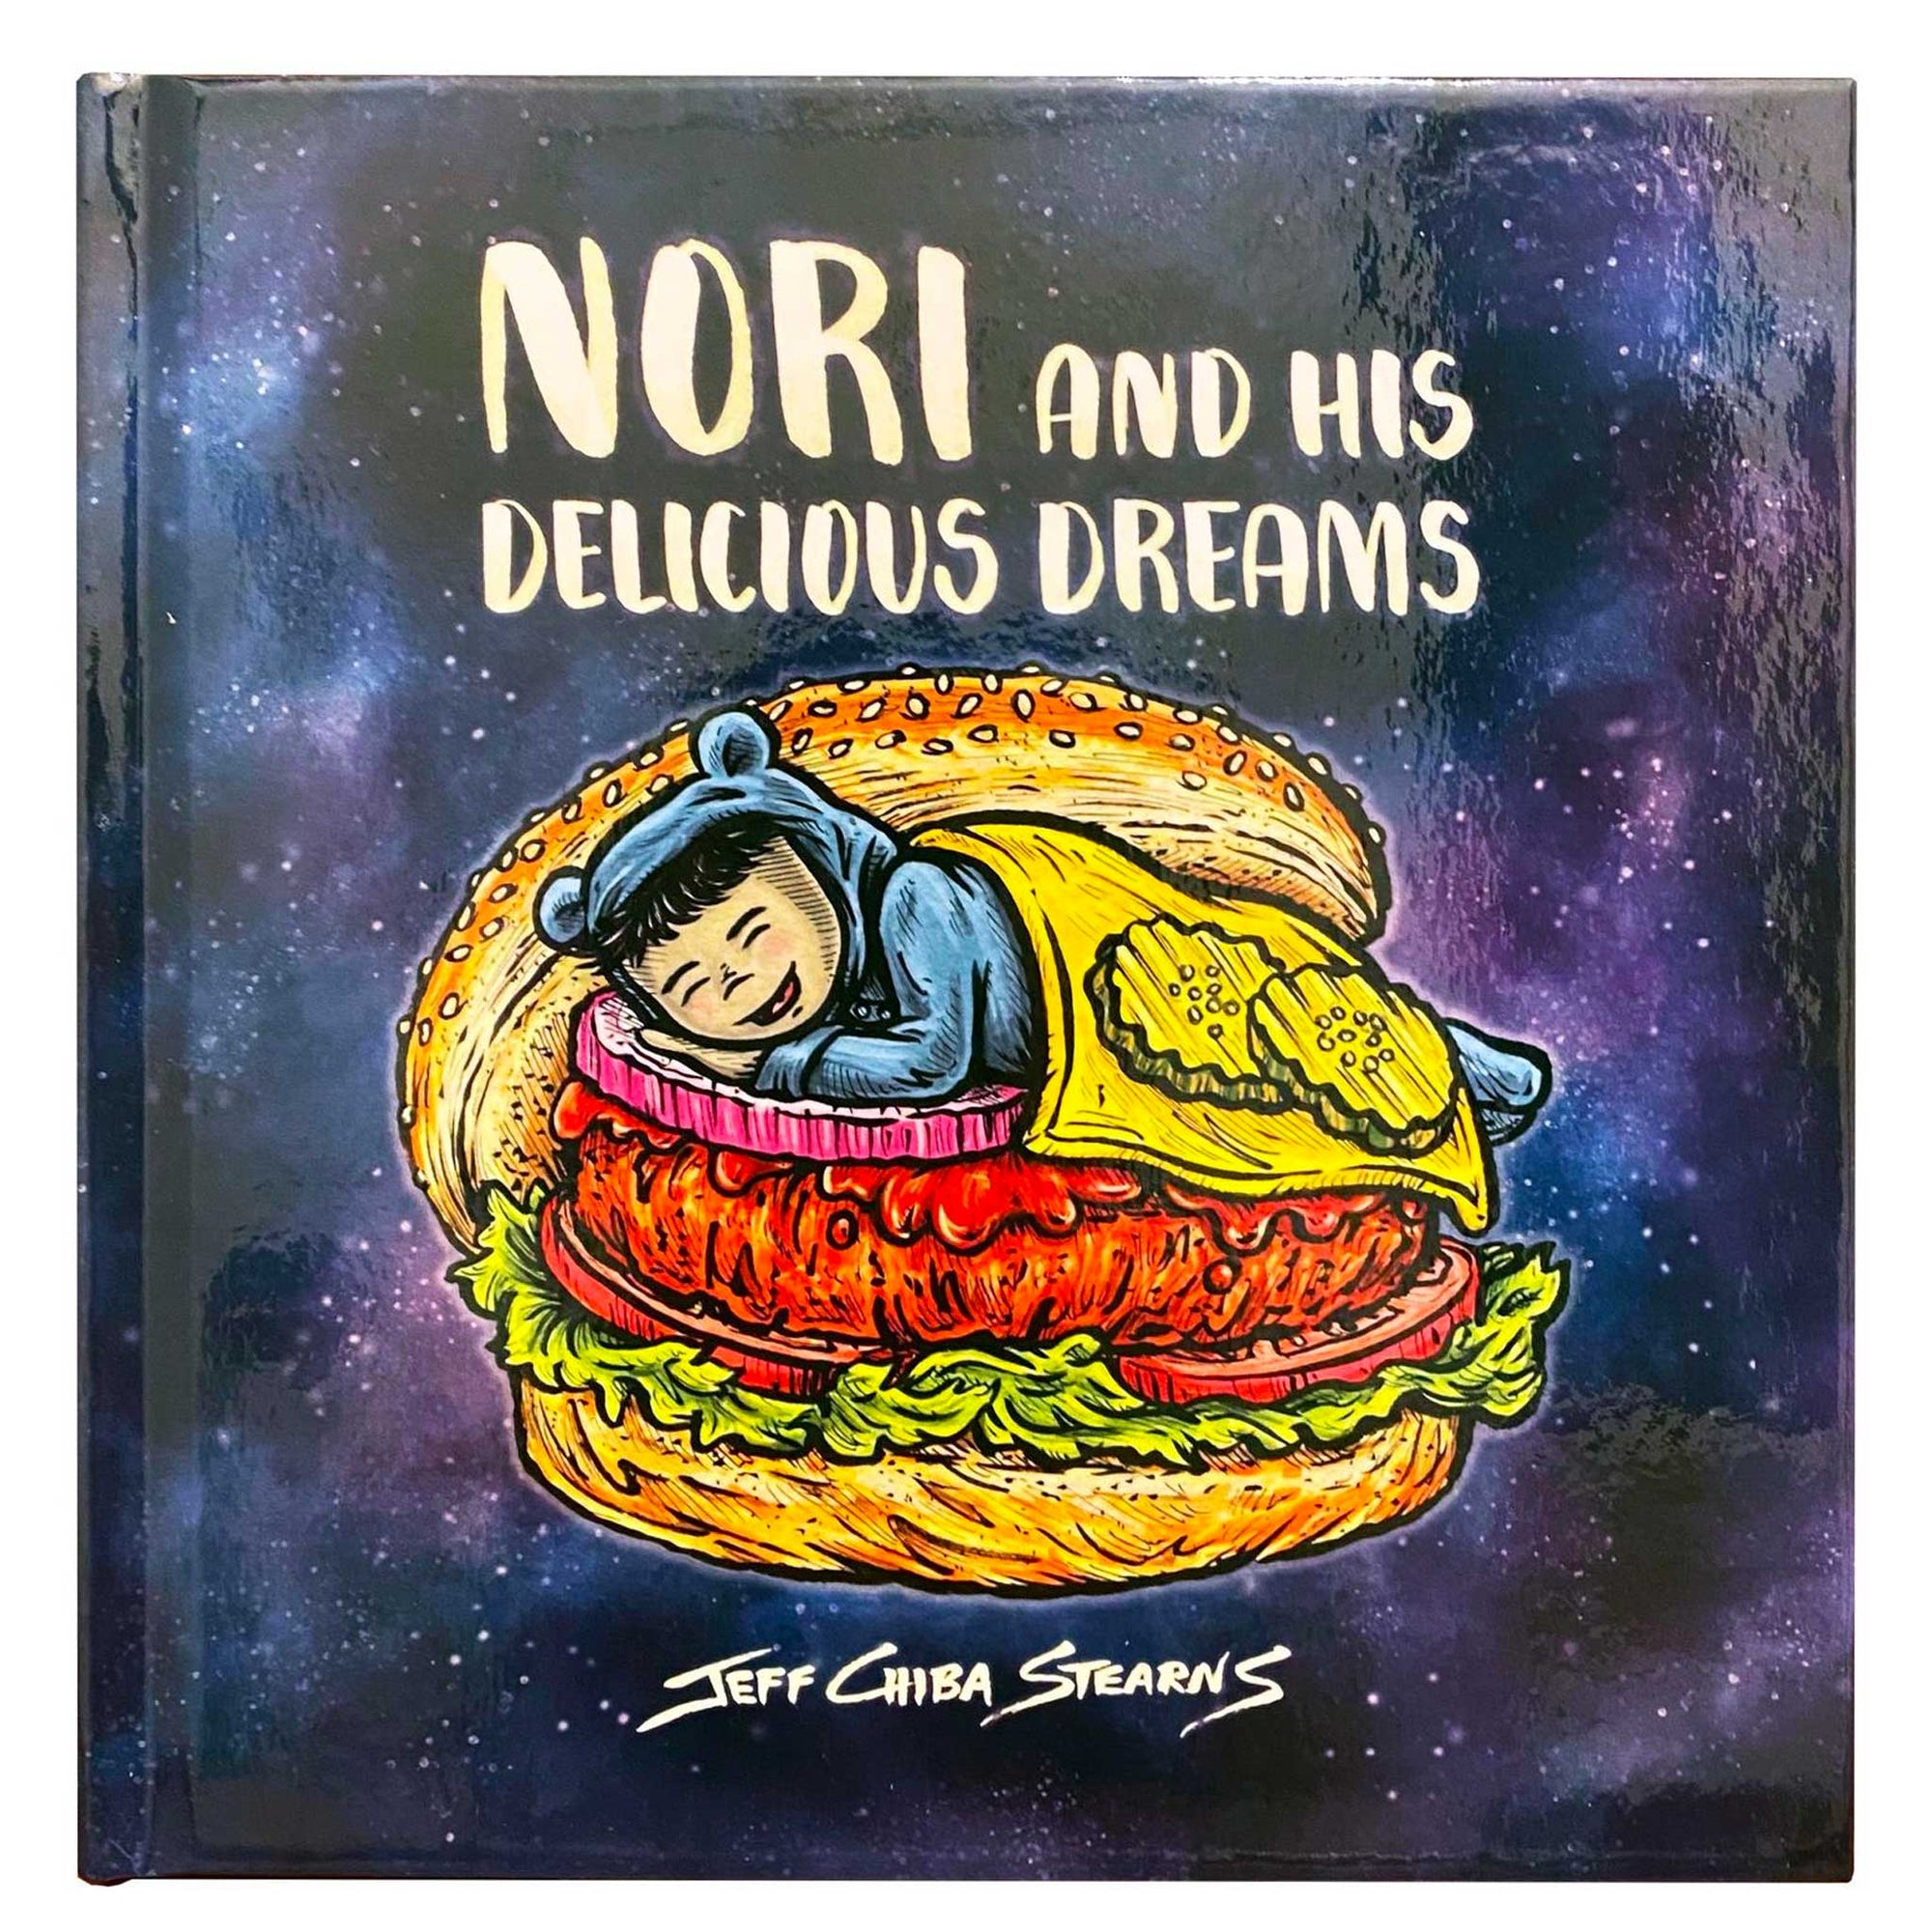 """Nori and his Delicious Dreams"" by Jeff Chiba Stearns"